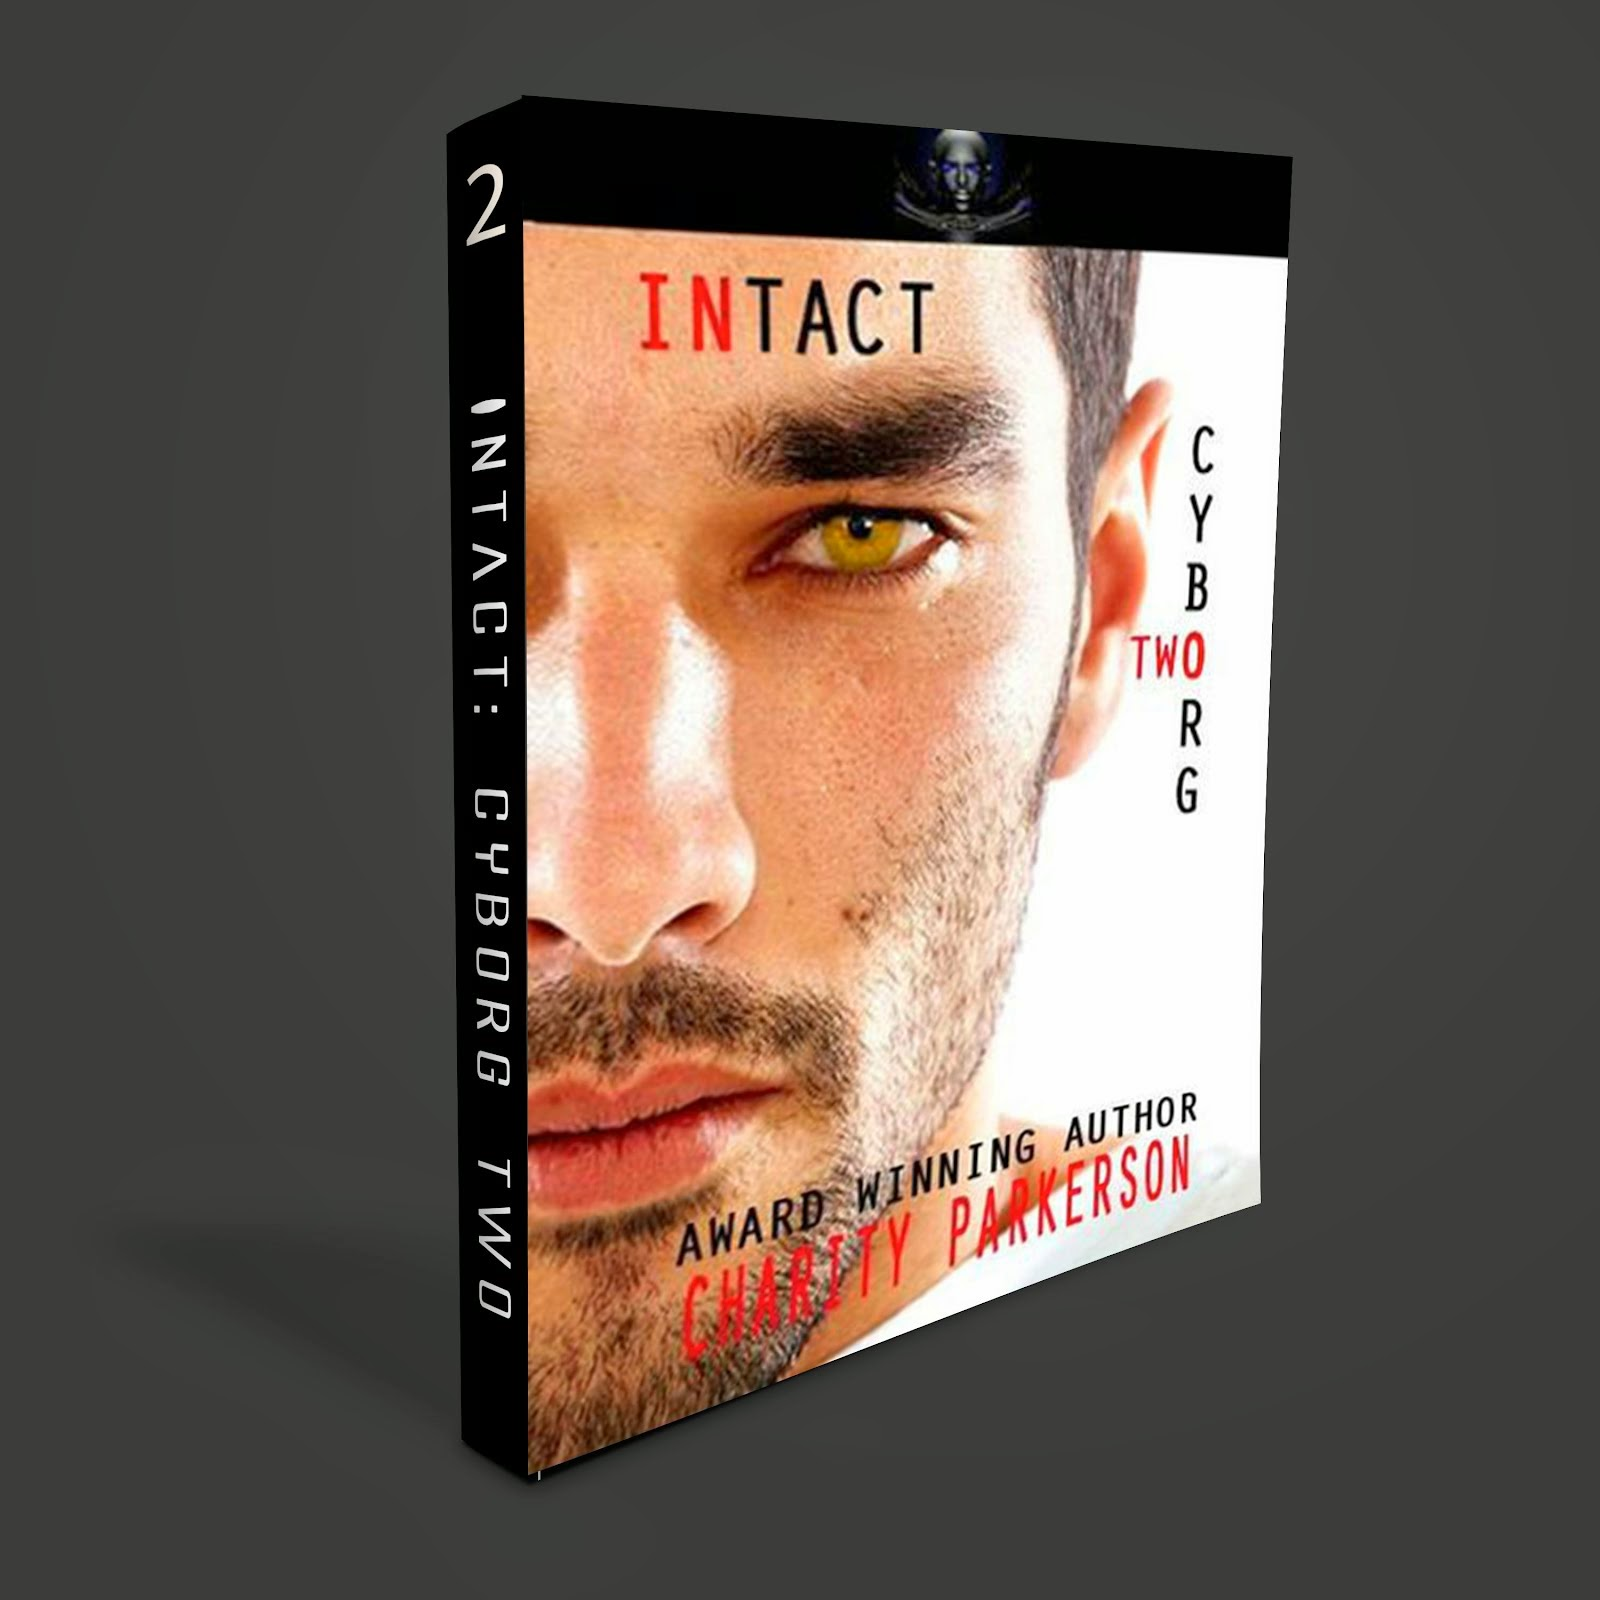 Intact: Cyborg Two